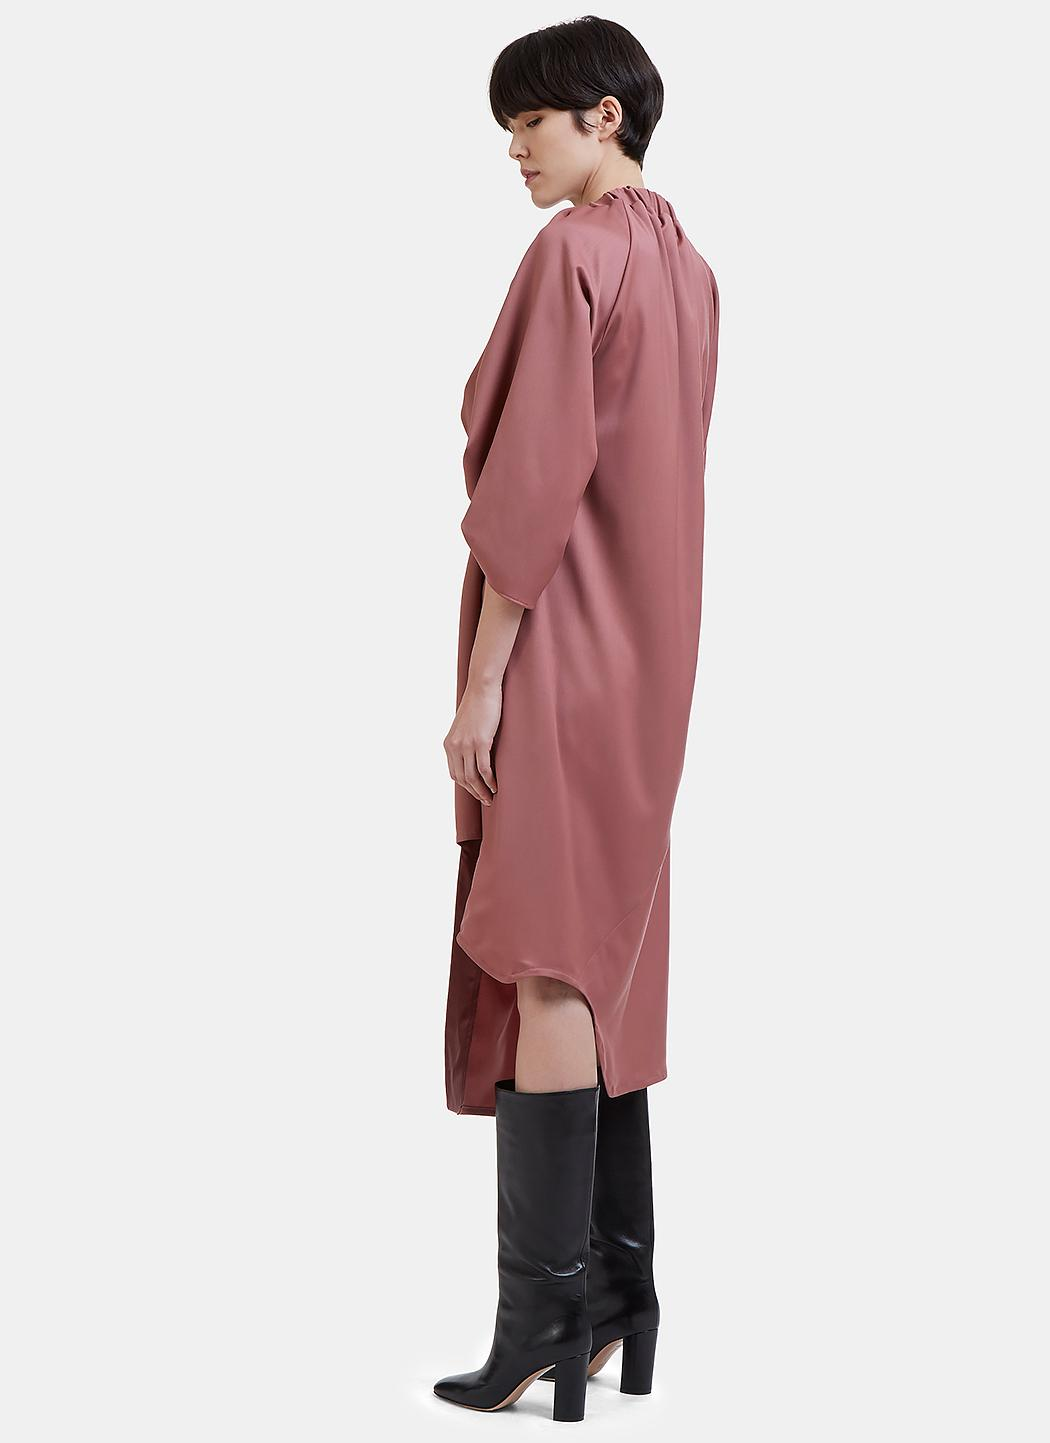 Ruched Wool Dress Vejas c8to9xM